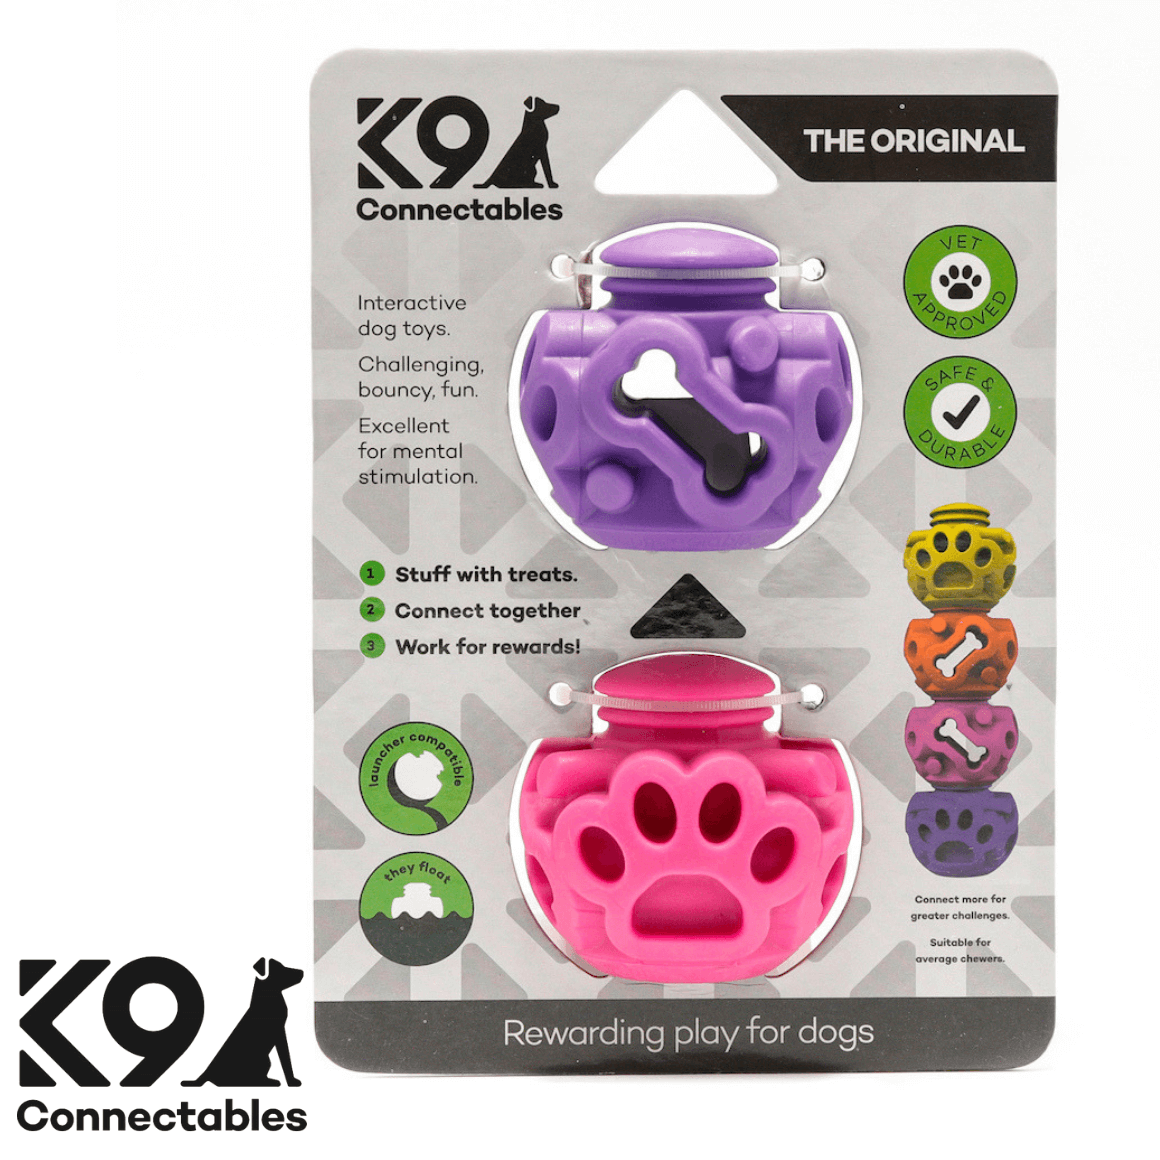 k9 Connectables Australia - The Original Pink Purple